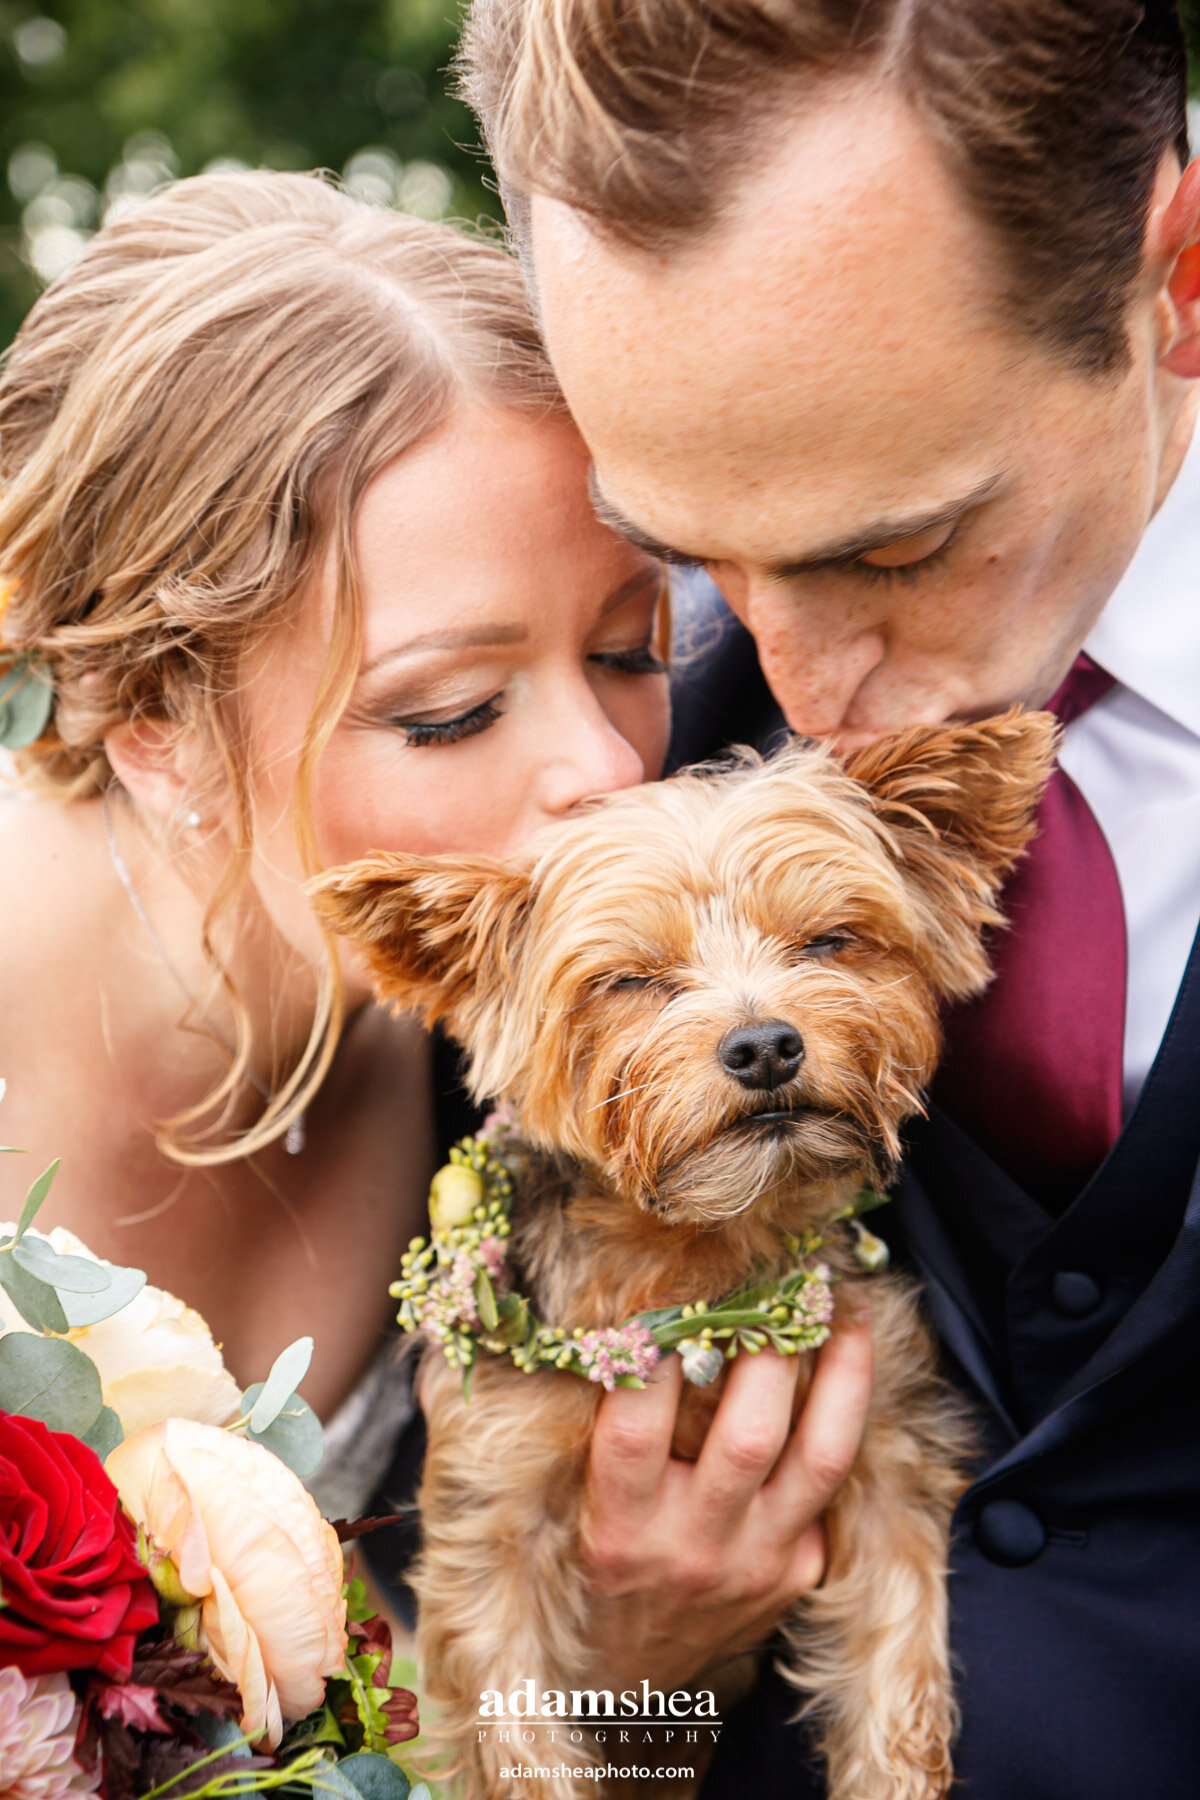 Gorgeous Wedding Fields at the Reserve - Stoughton WI - Adam Shea Photography - Bride and Bridesmaids - Bride and Groom with Dog